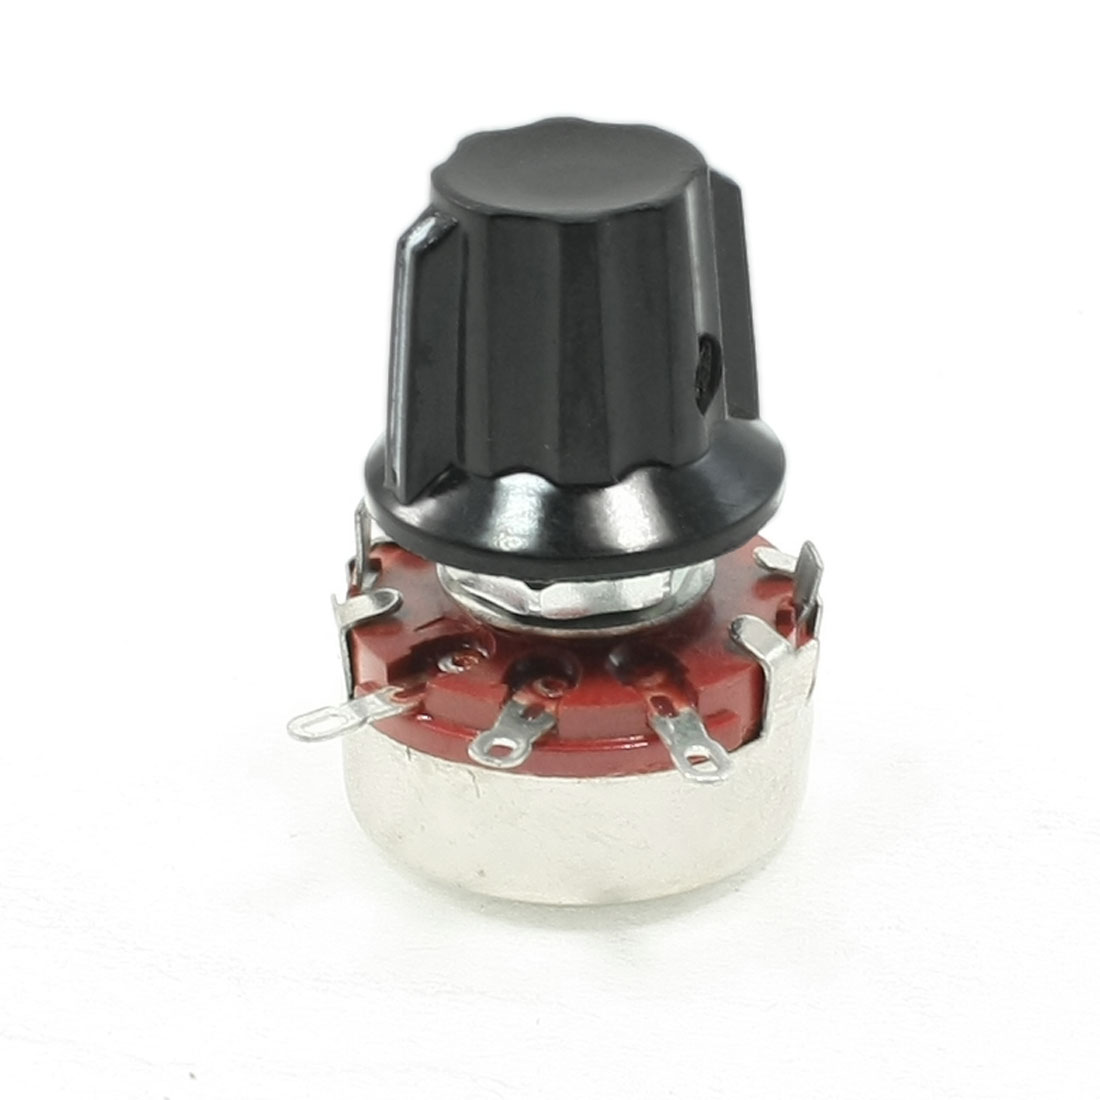 WTH118 2.2K ohm 2W Single Turn Rotary Linear Taper Carbon Potentiometer w Knob